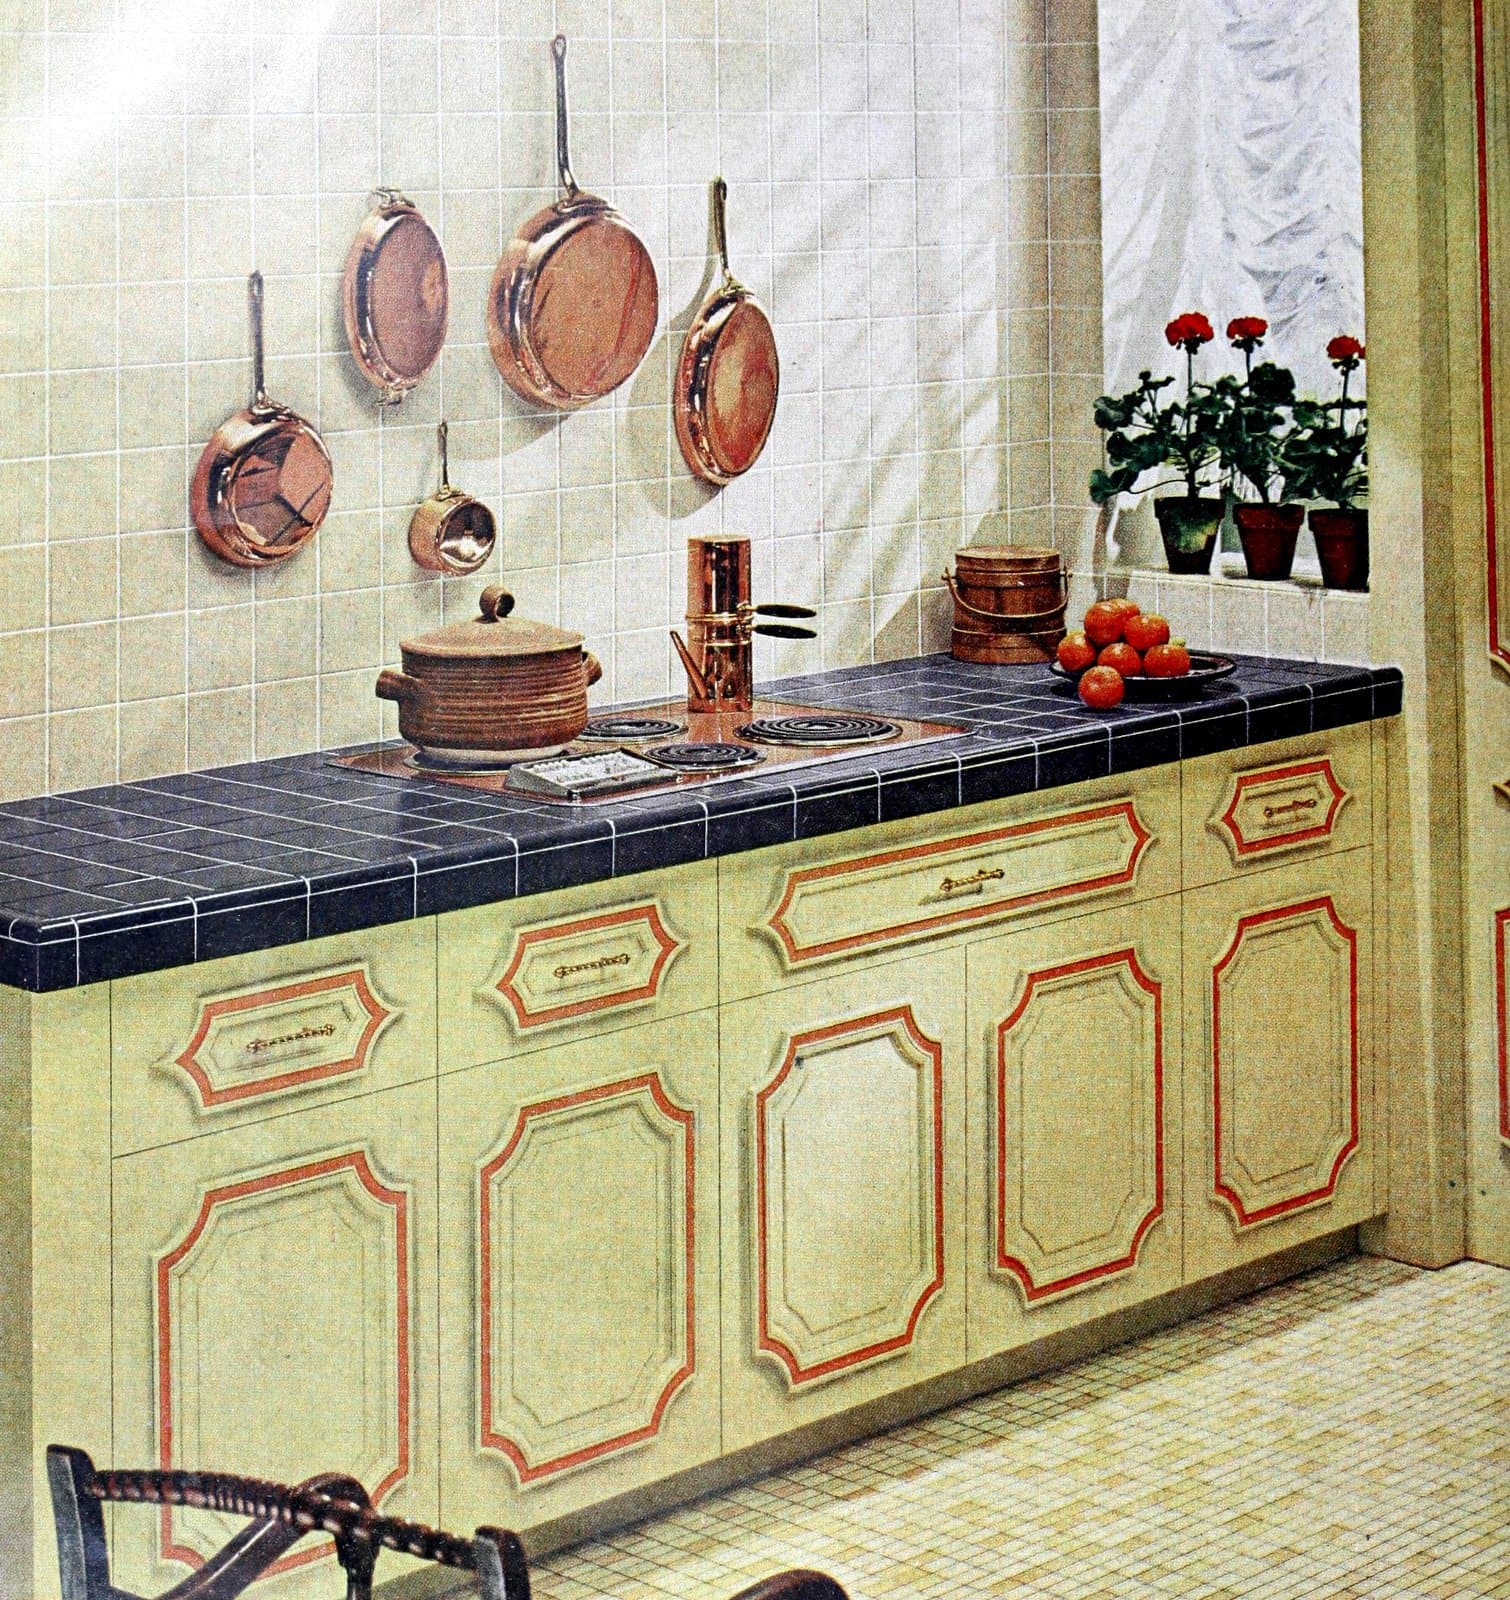 Vintage tile in a kitchen from the 1960s